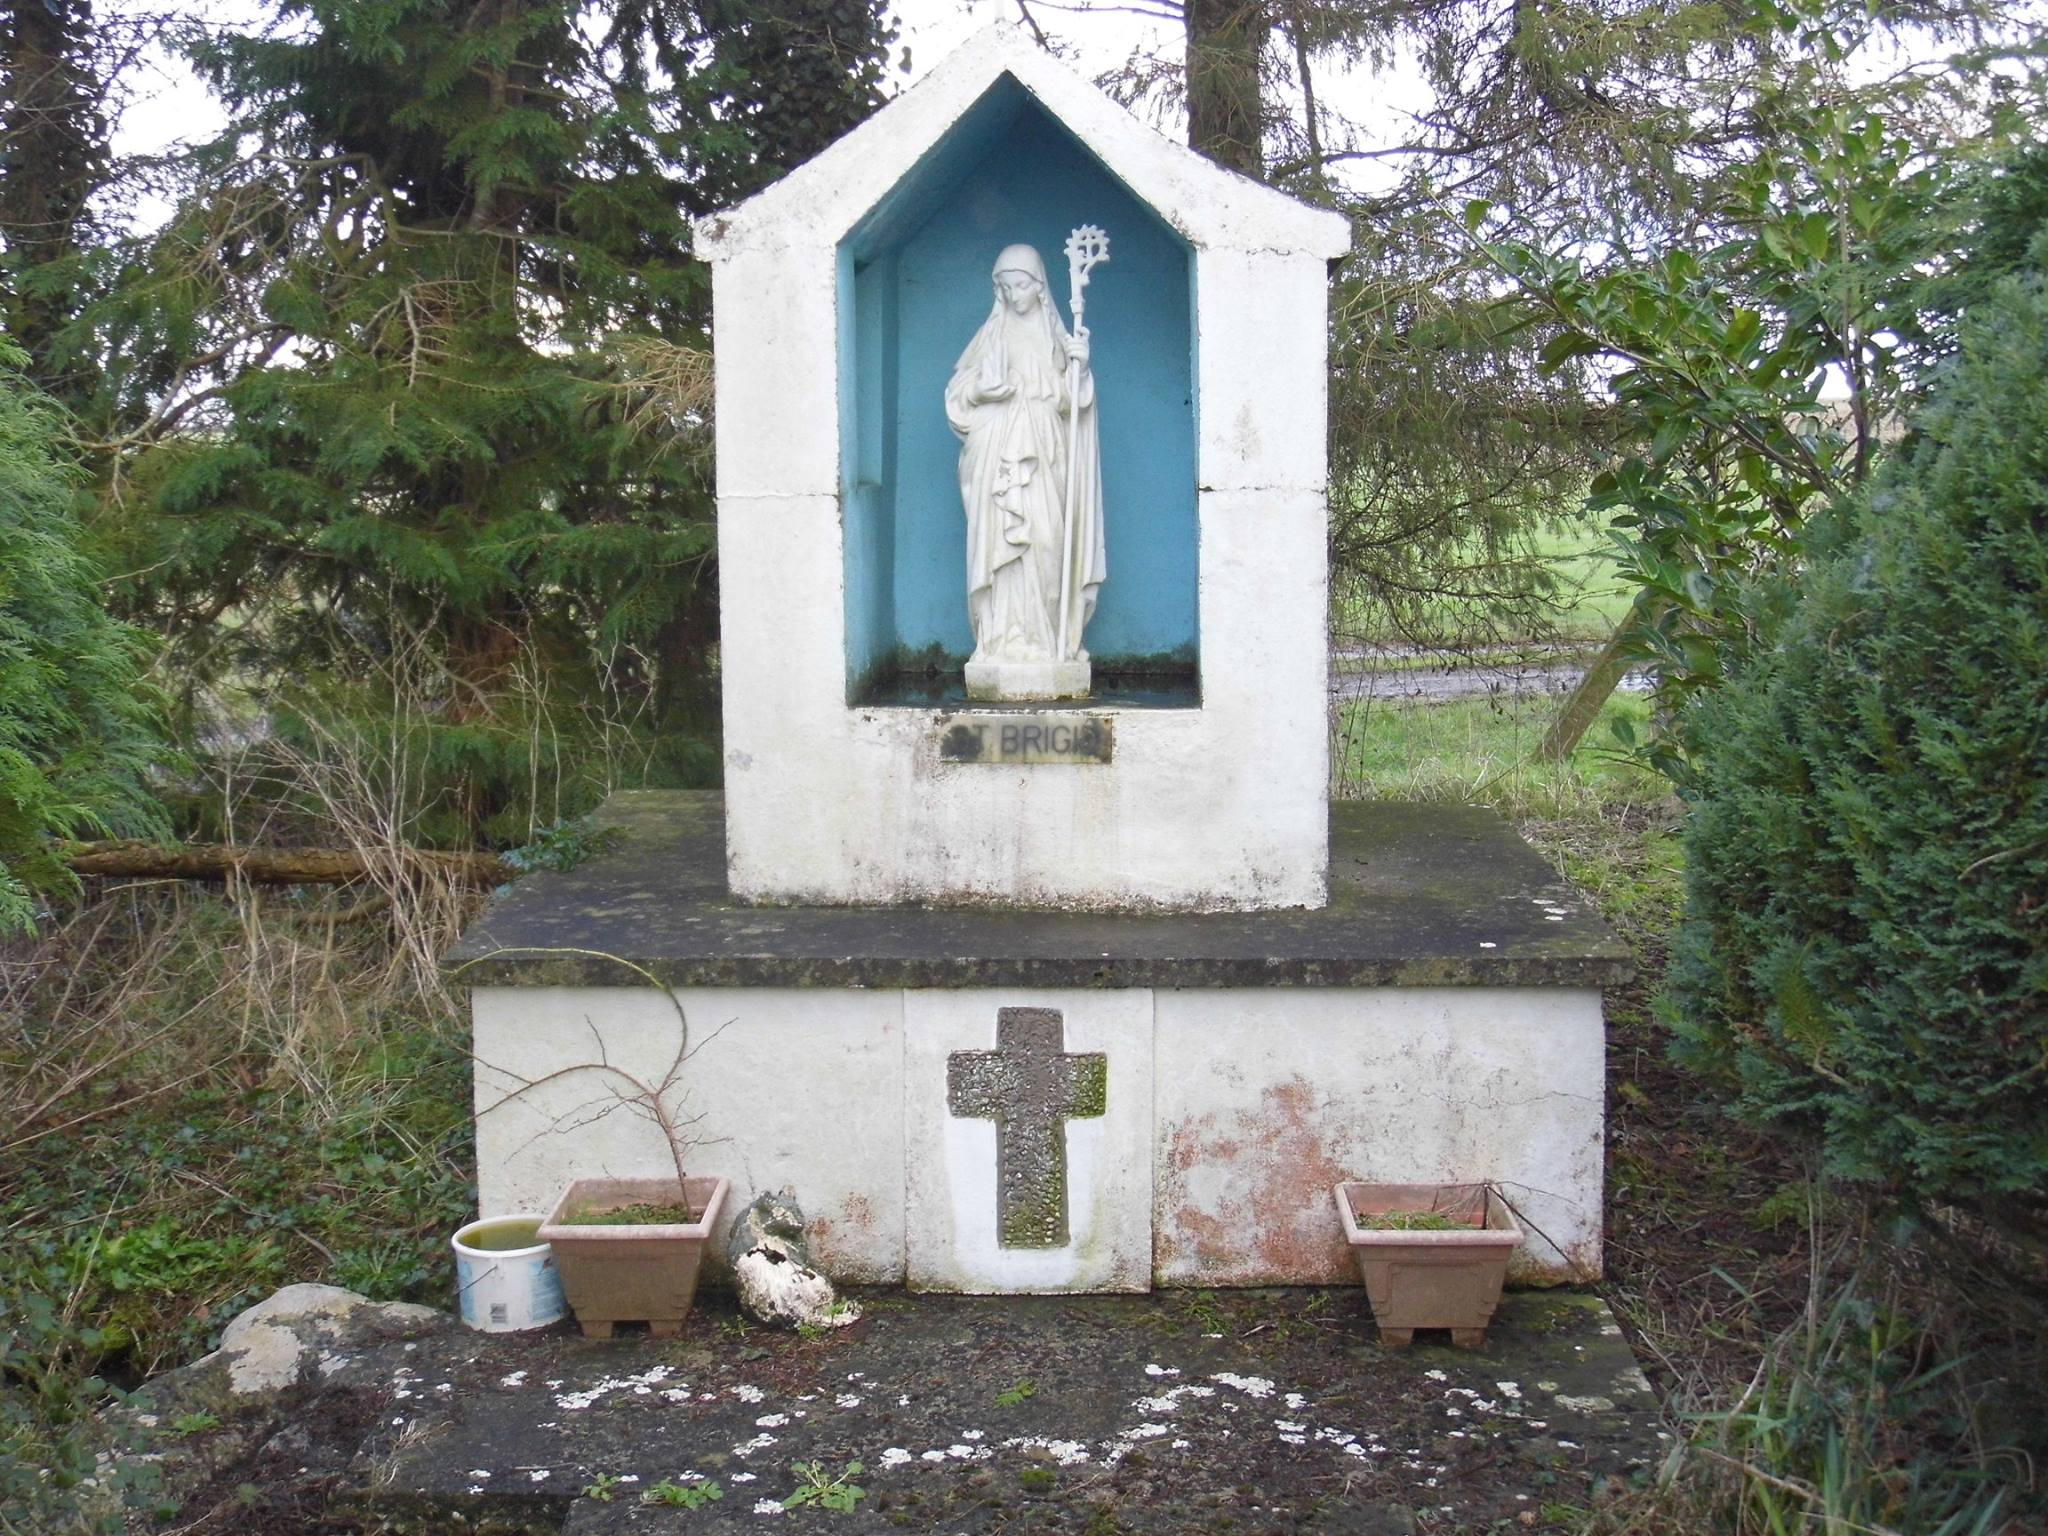 St. Brigids Holy Well at Morett